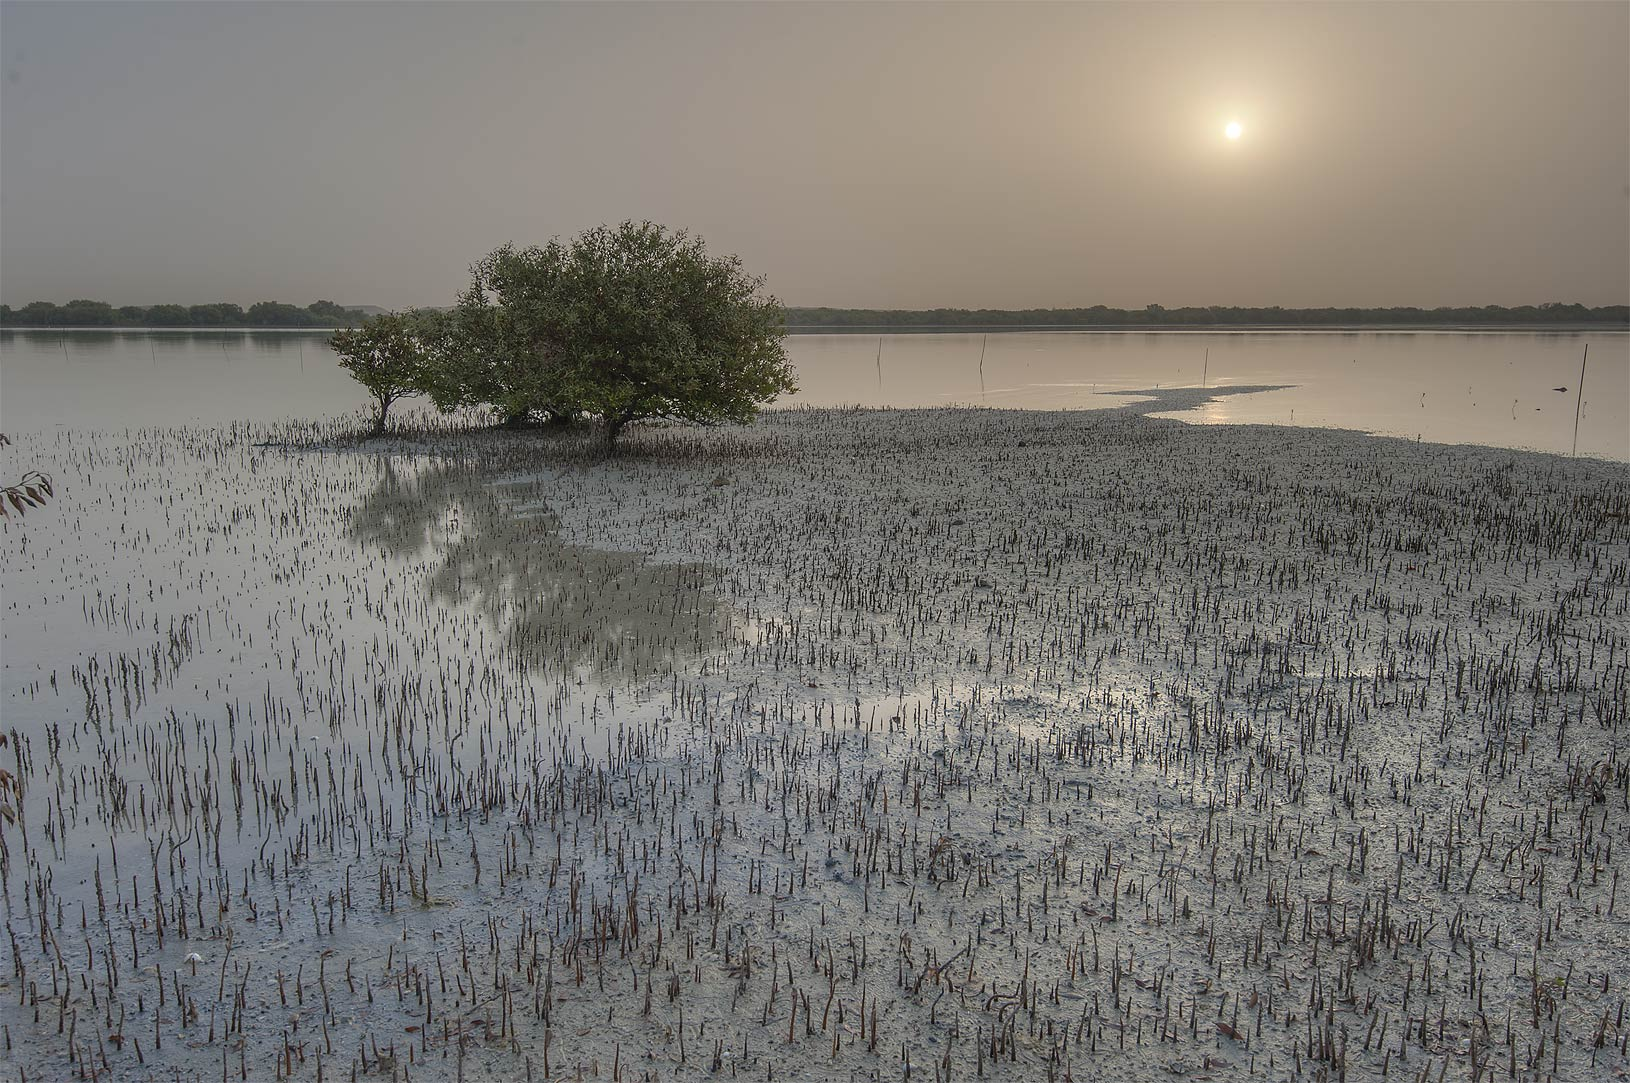 Mangrove tree (Avicennia marina) at sunrise on...Jazirat Bin Ghanim). Al Khor, Qatar